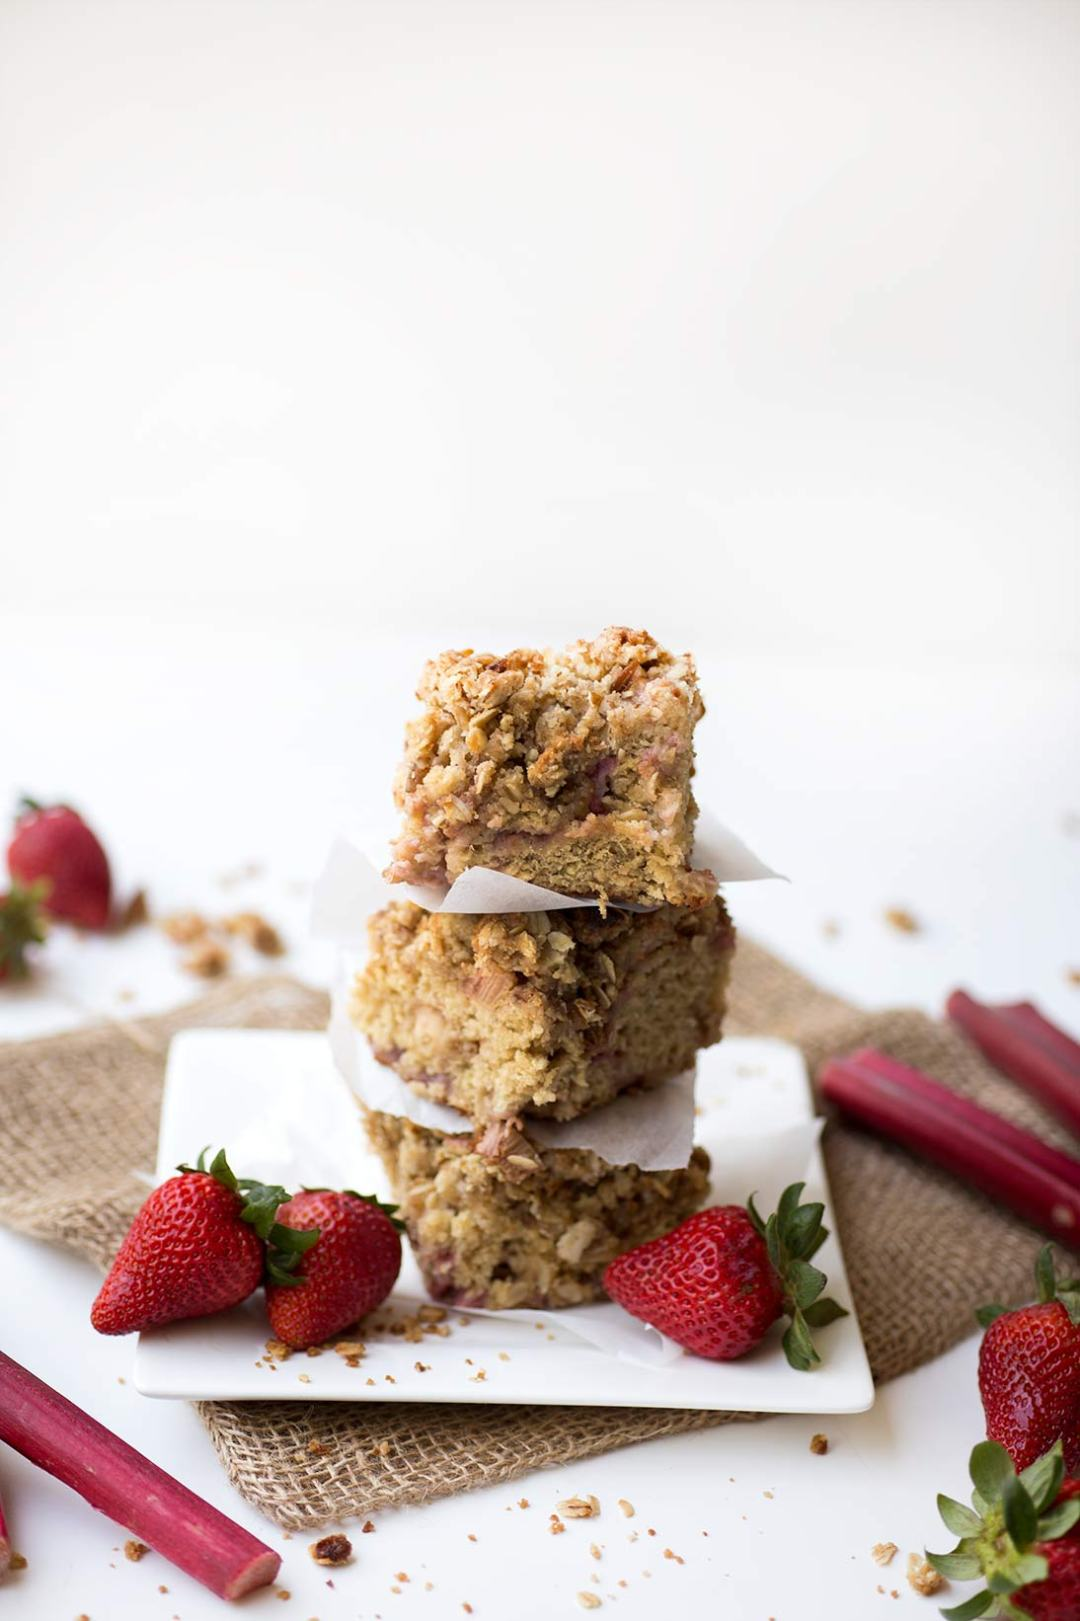 Strawberry Rhubarb Streusel Cake: The classic combo of strawberries and rhubarb in a nutmeg-spiced cake, topped with a buttery oatmeal-brown sugar streusel.